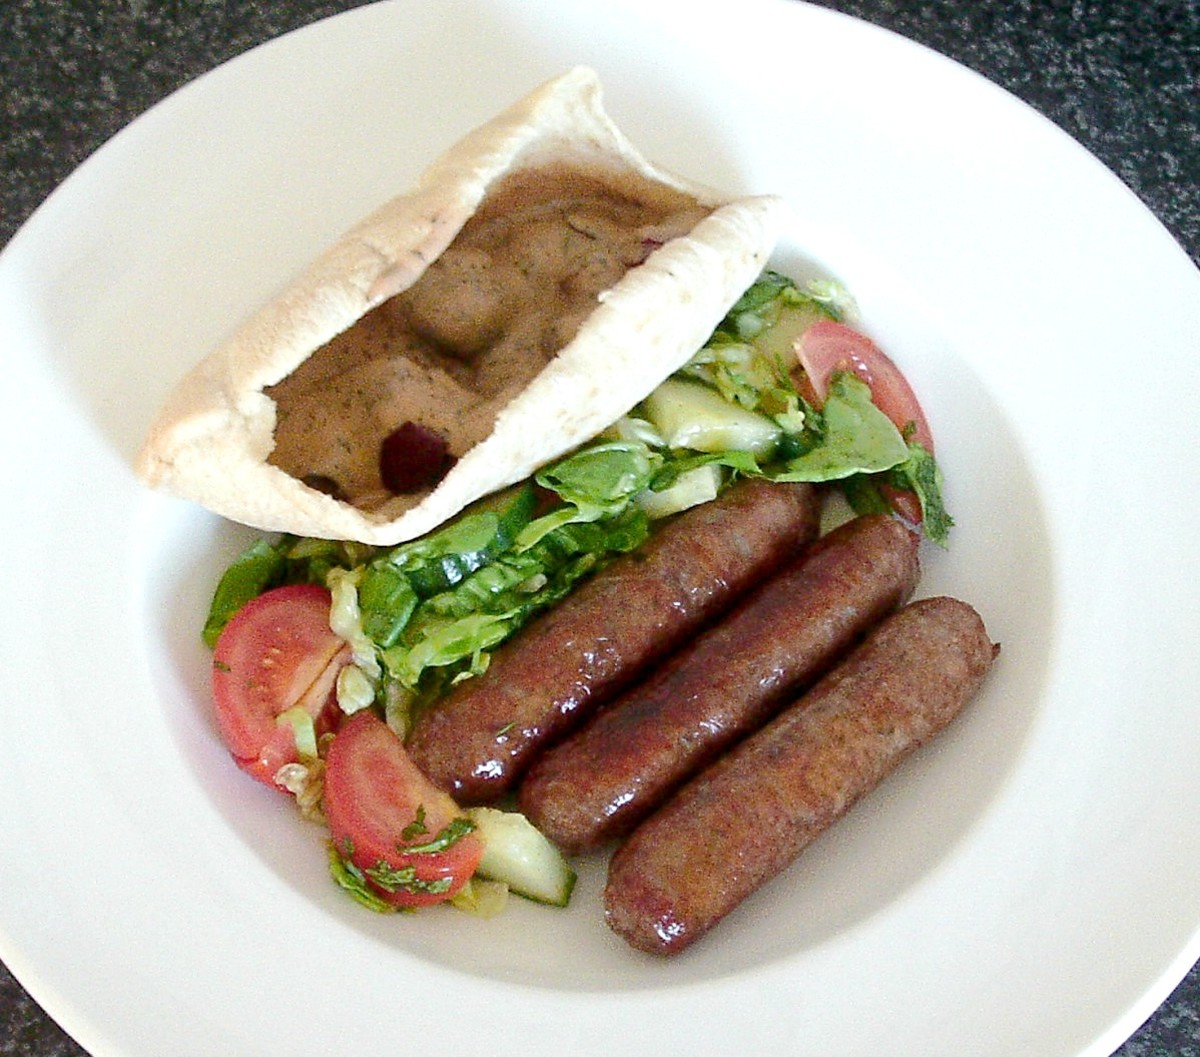 Venison sausages with mushrooms in spicy sauce pitta pocket and salad